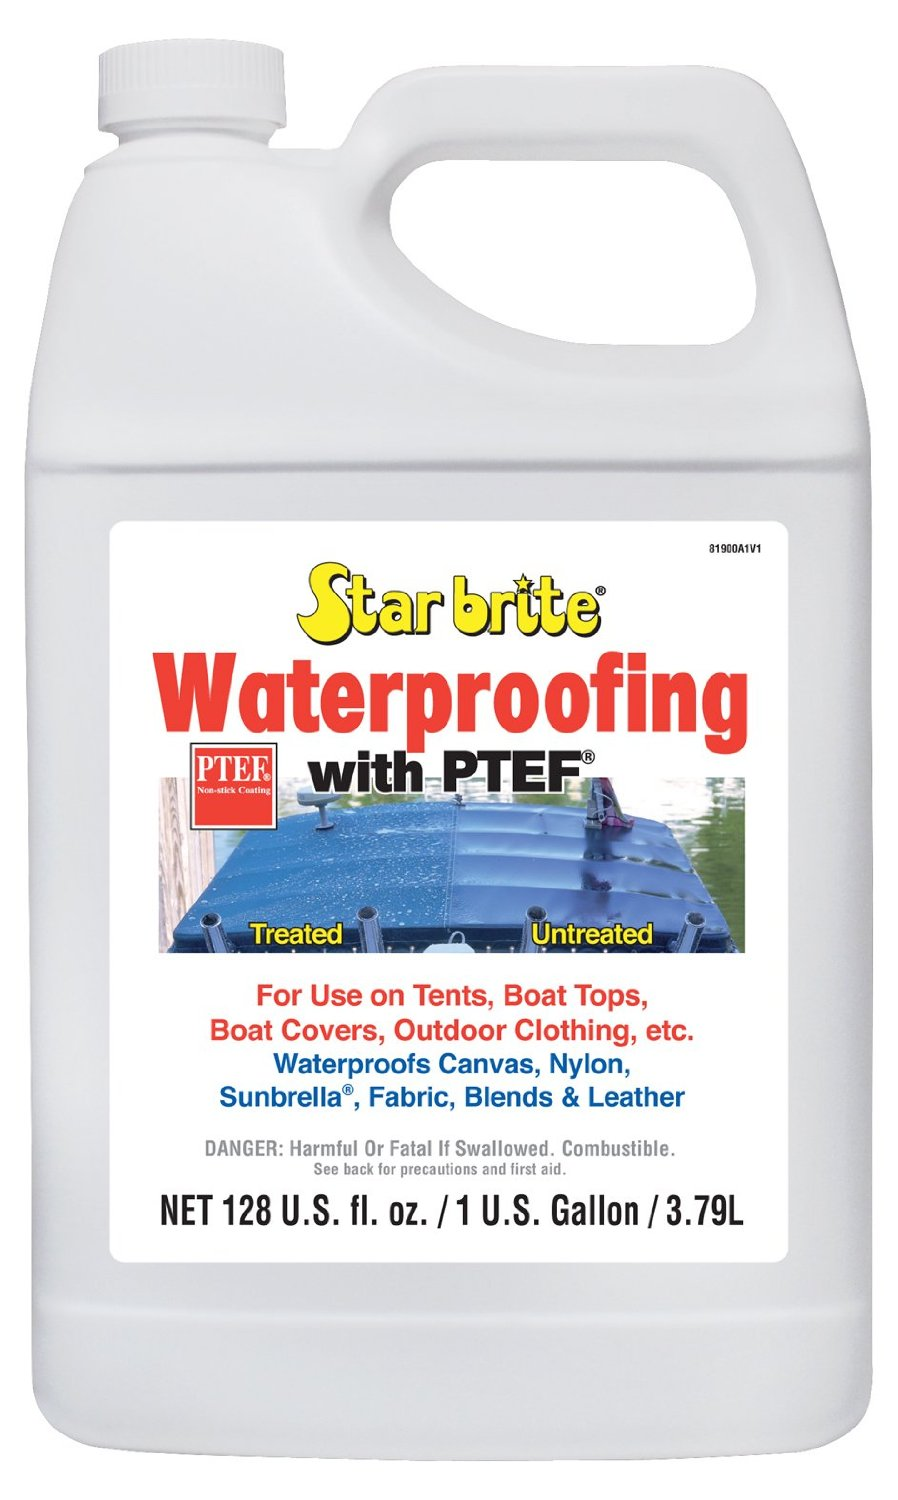 Star Brite 81900 Star Brite Waterproofing Amp Fabric